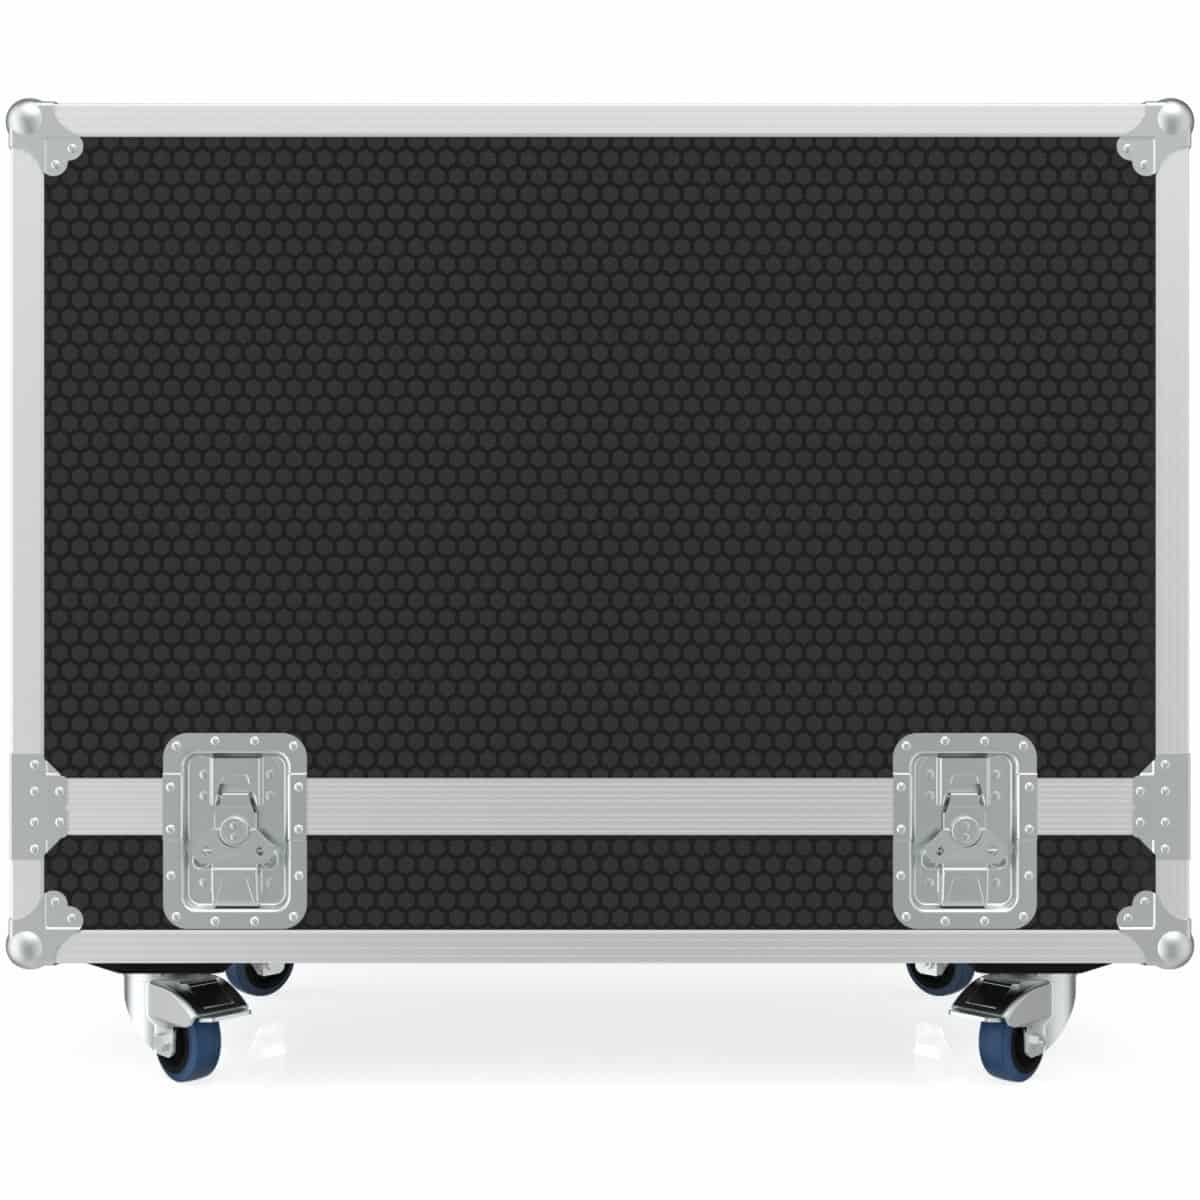 Twin Speaker Road Case 15 Inches